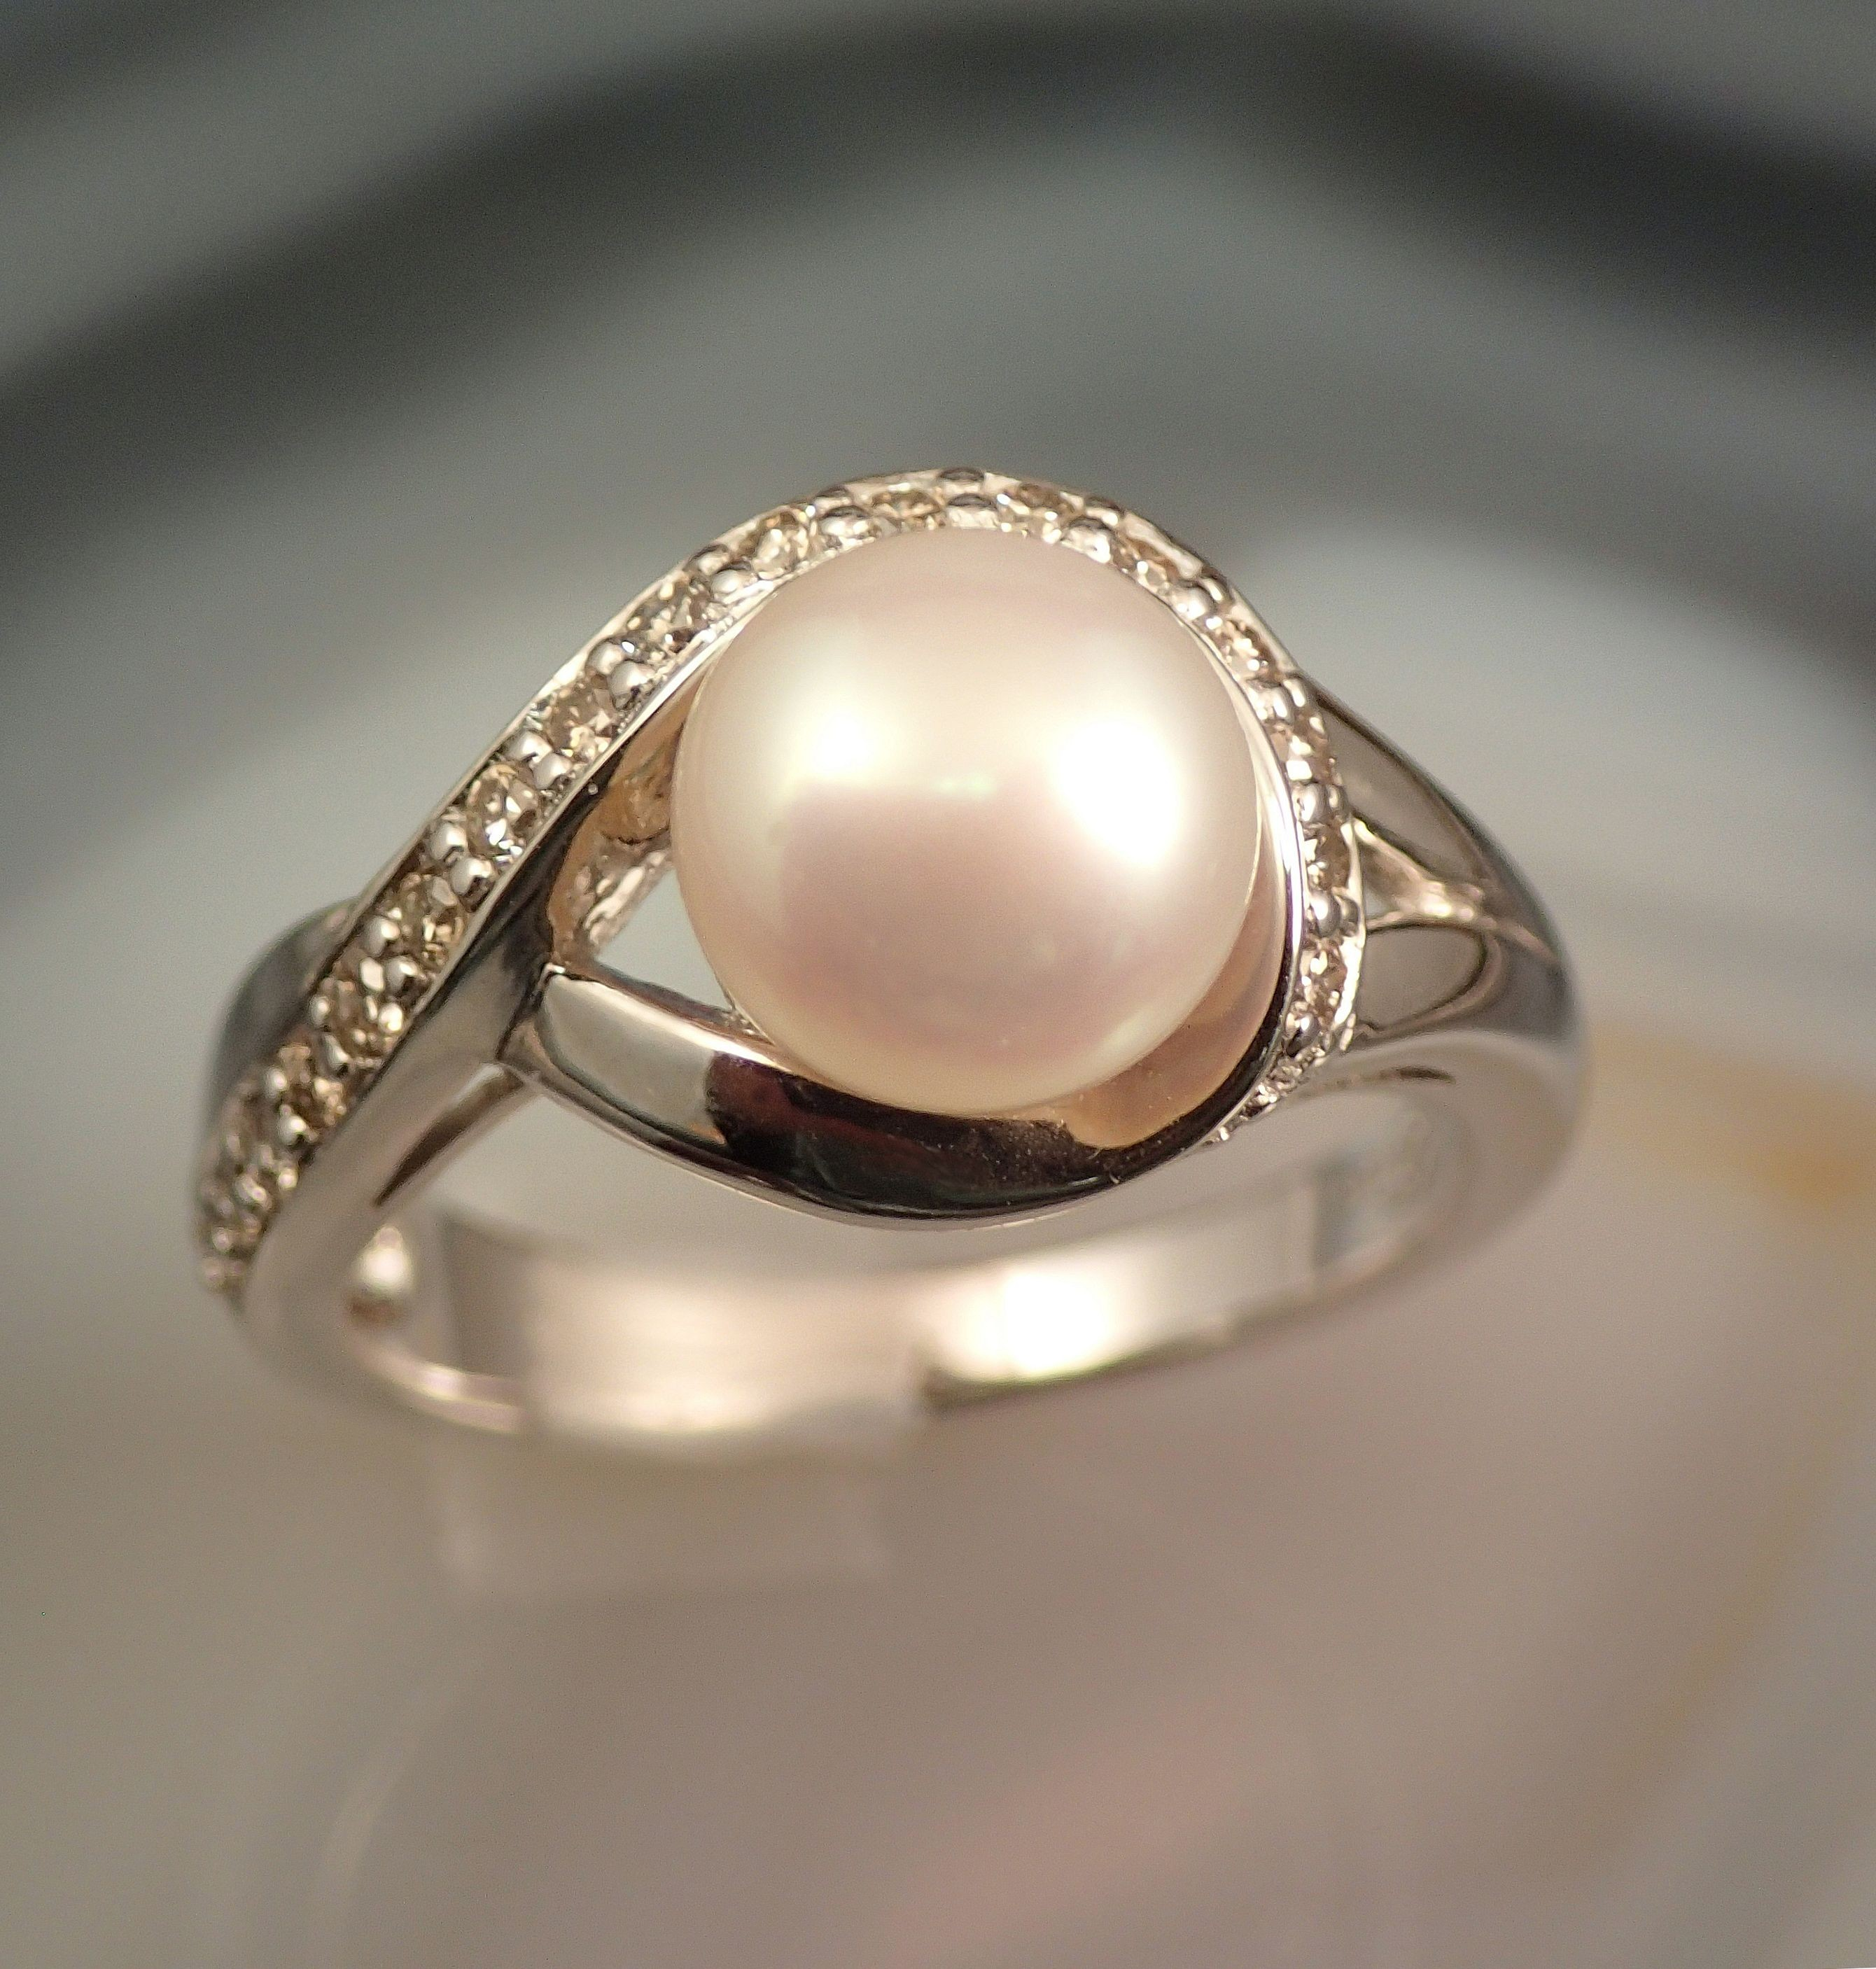 Rs0155 Pearl and Diamond Ring in Sterling Silver (SOLD)